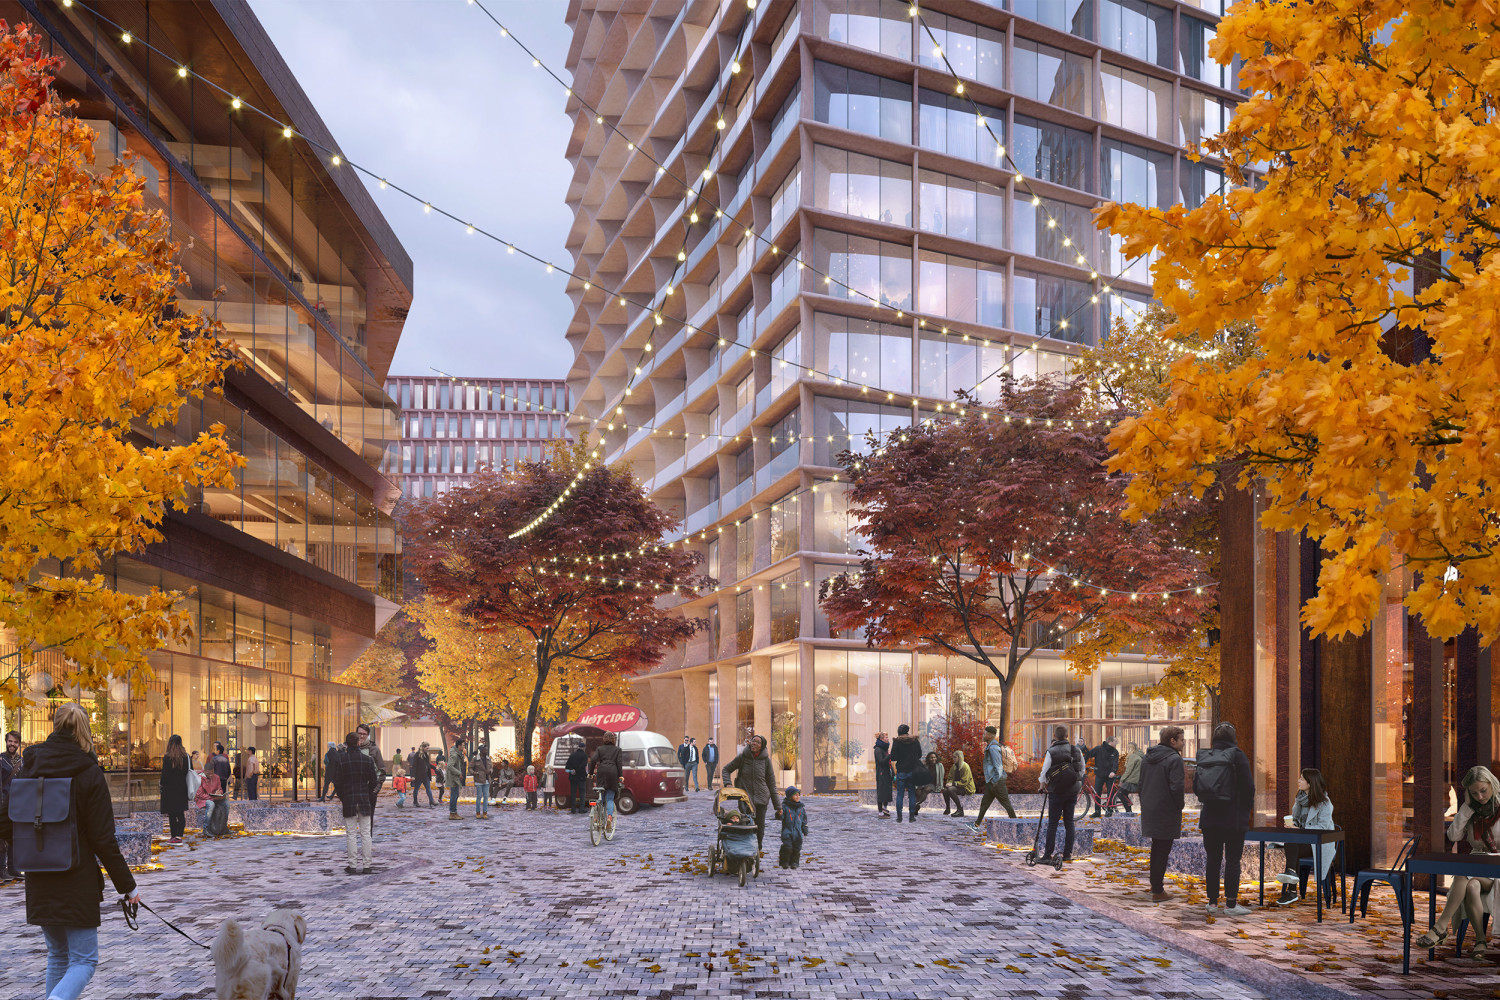 Rendering of a public square outside of an office complex.